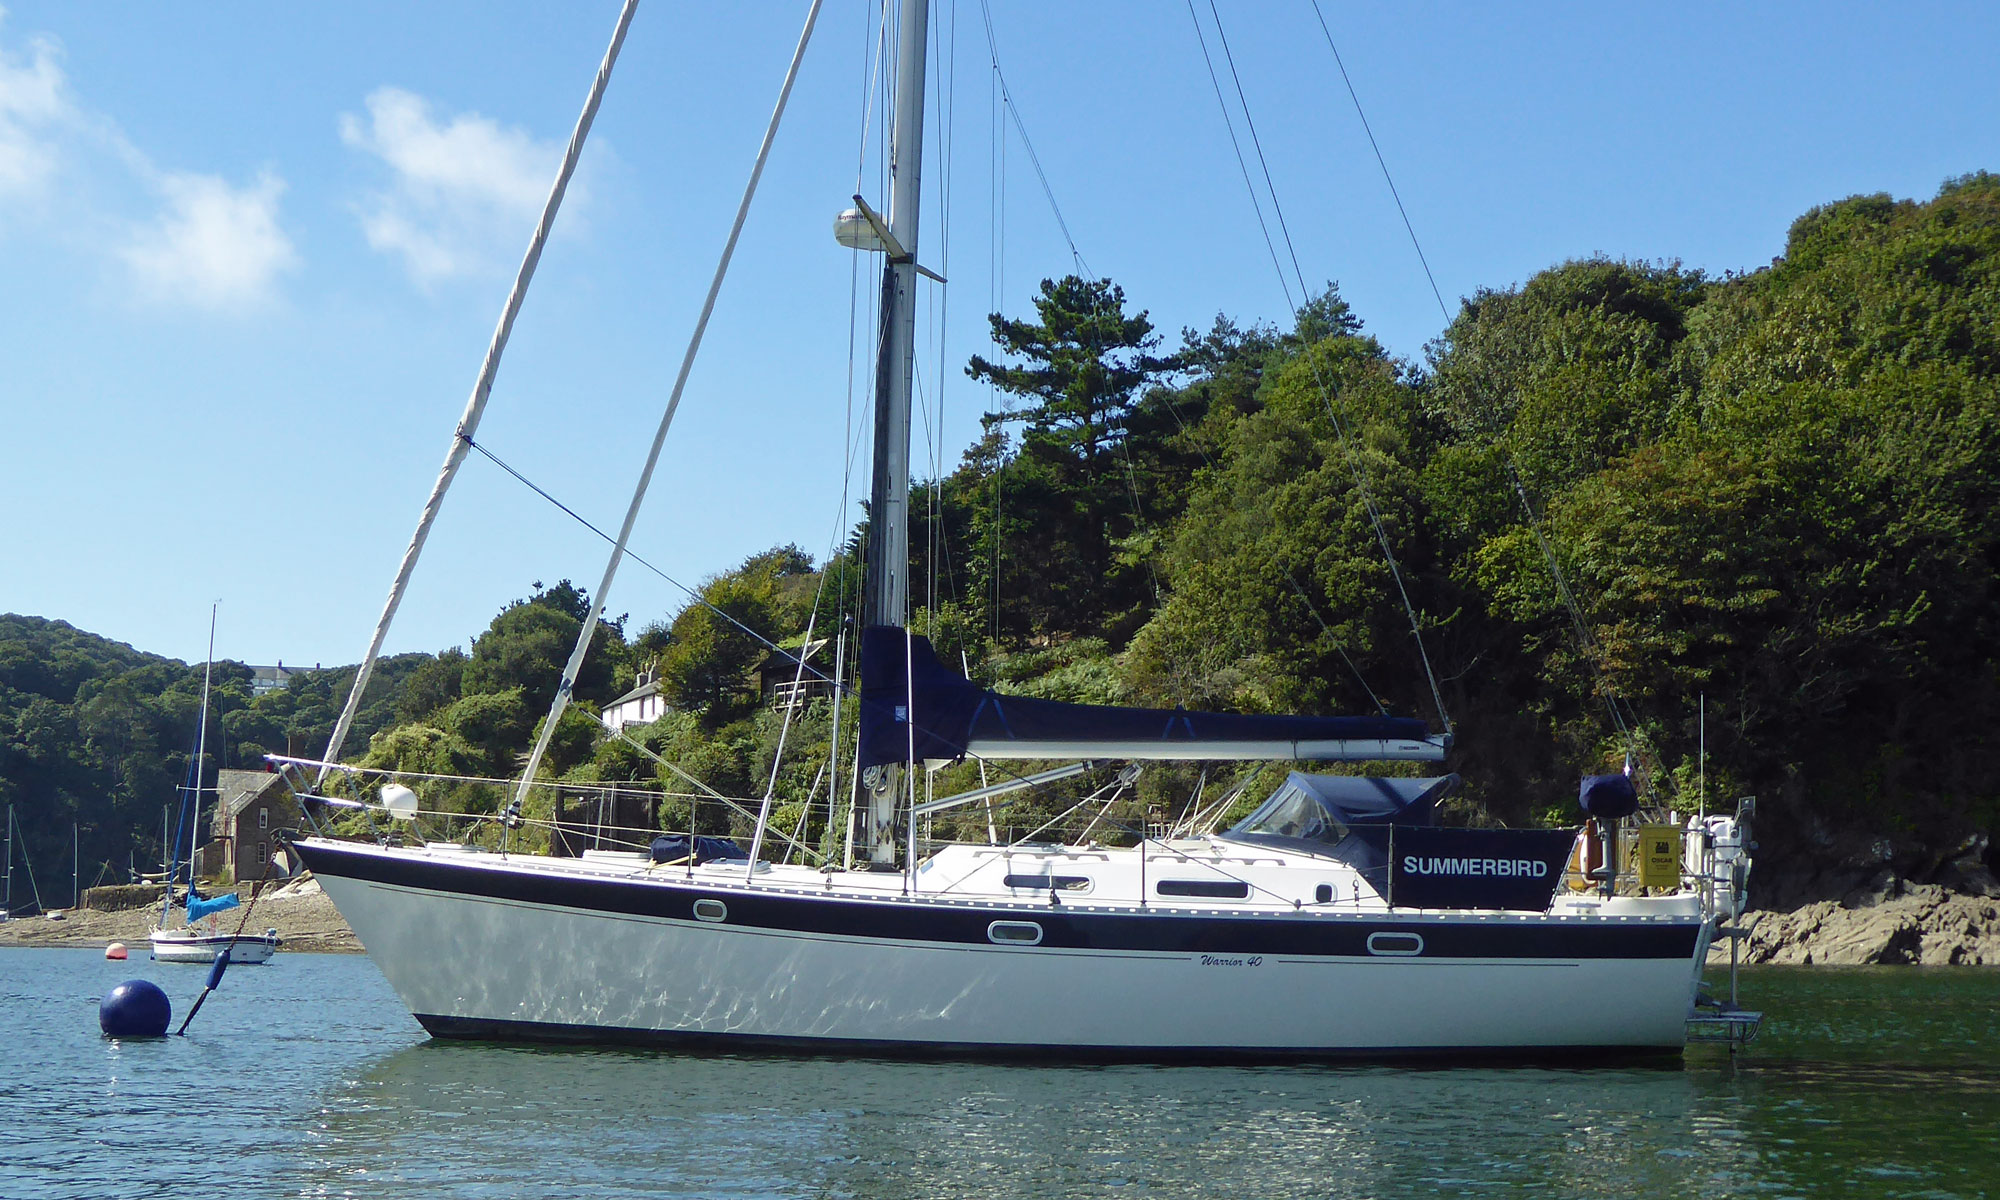 A Warrior 40 sailboat